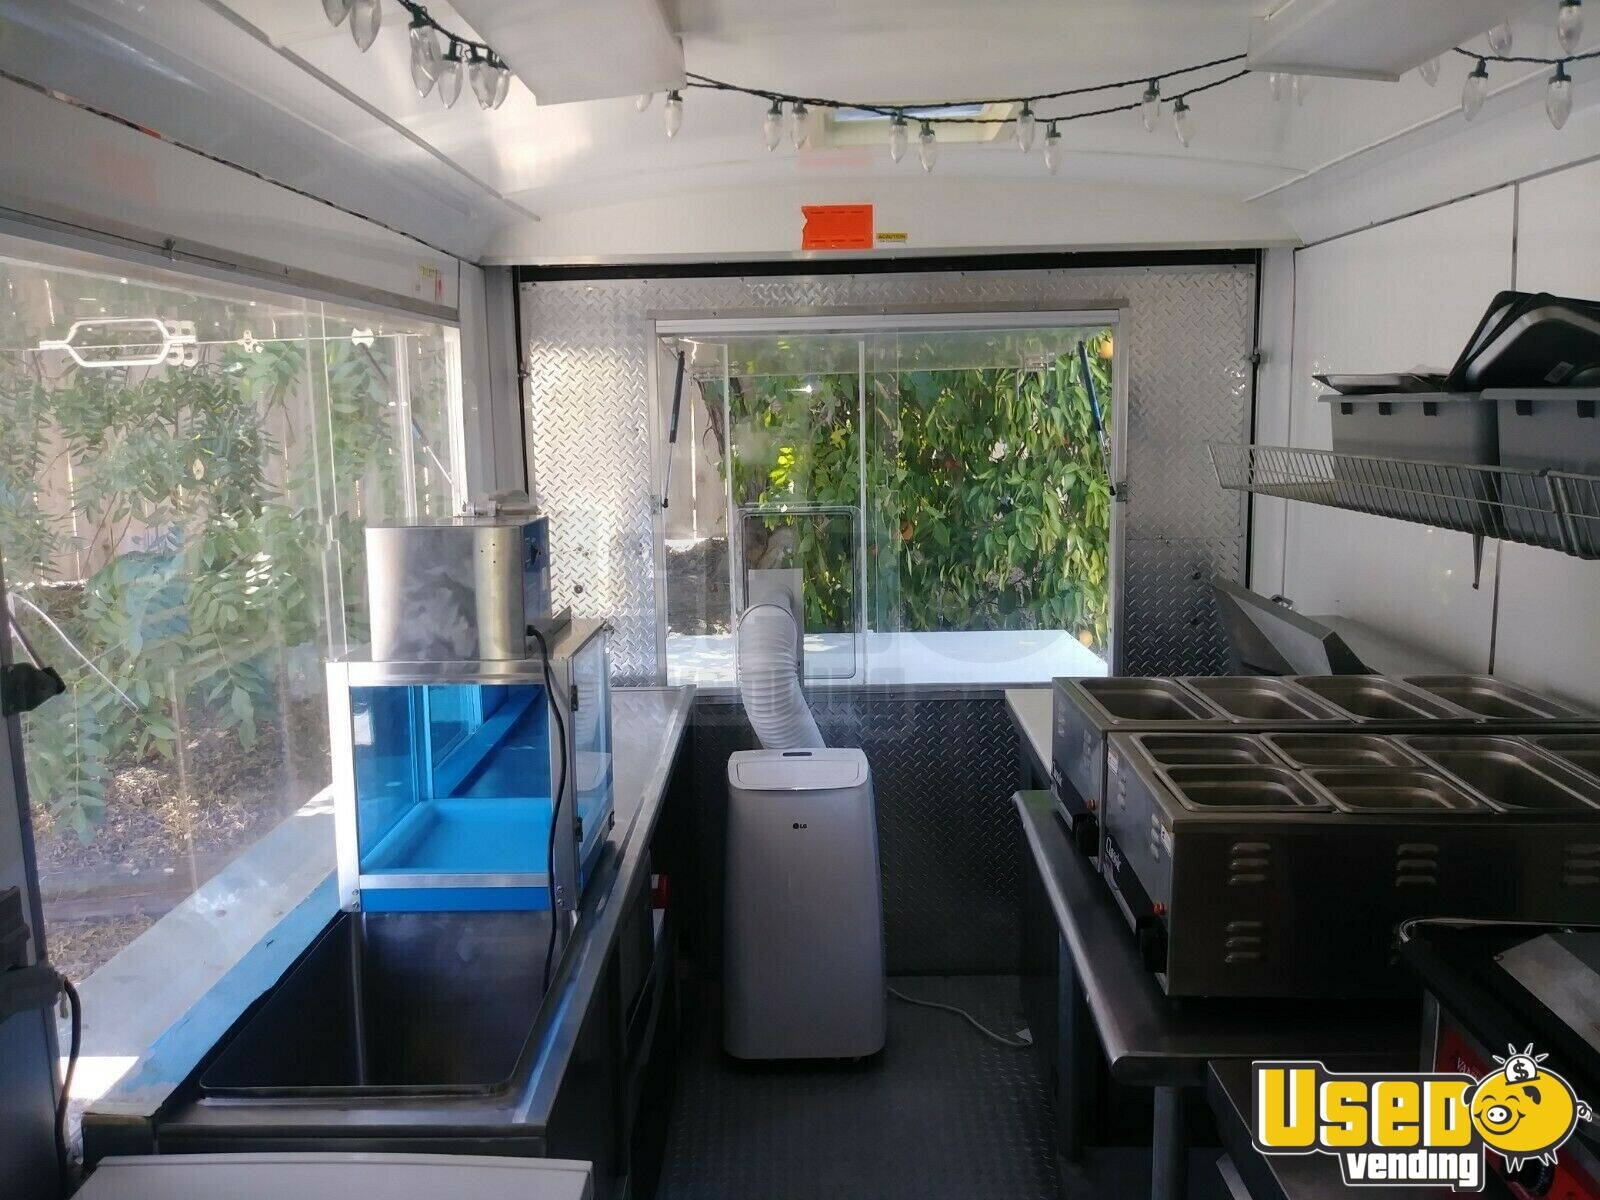 2004 Roadcoach All-purpose Food Trailer Microwave California for Sale - 8